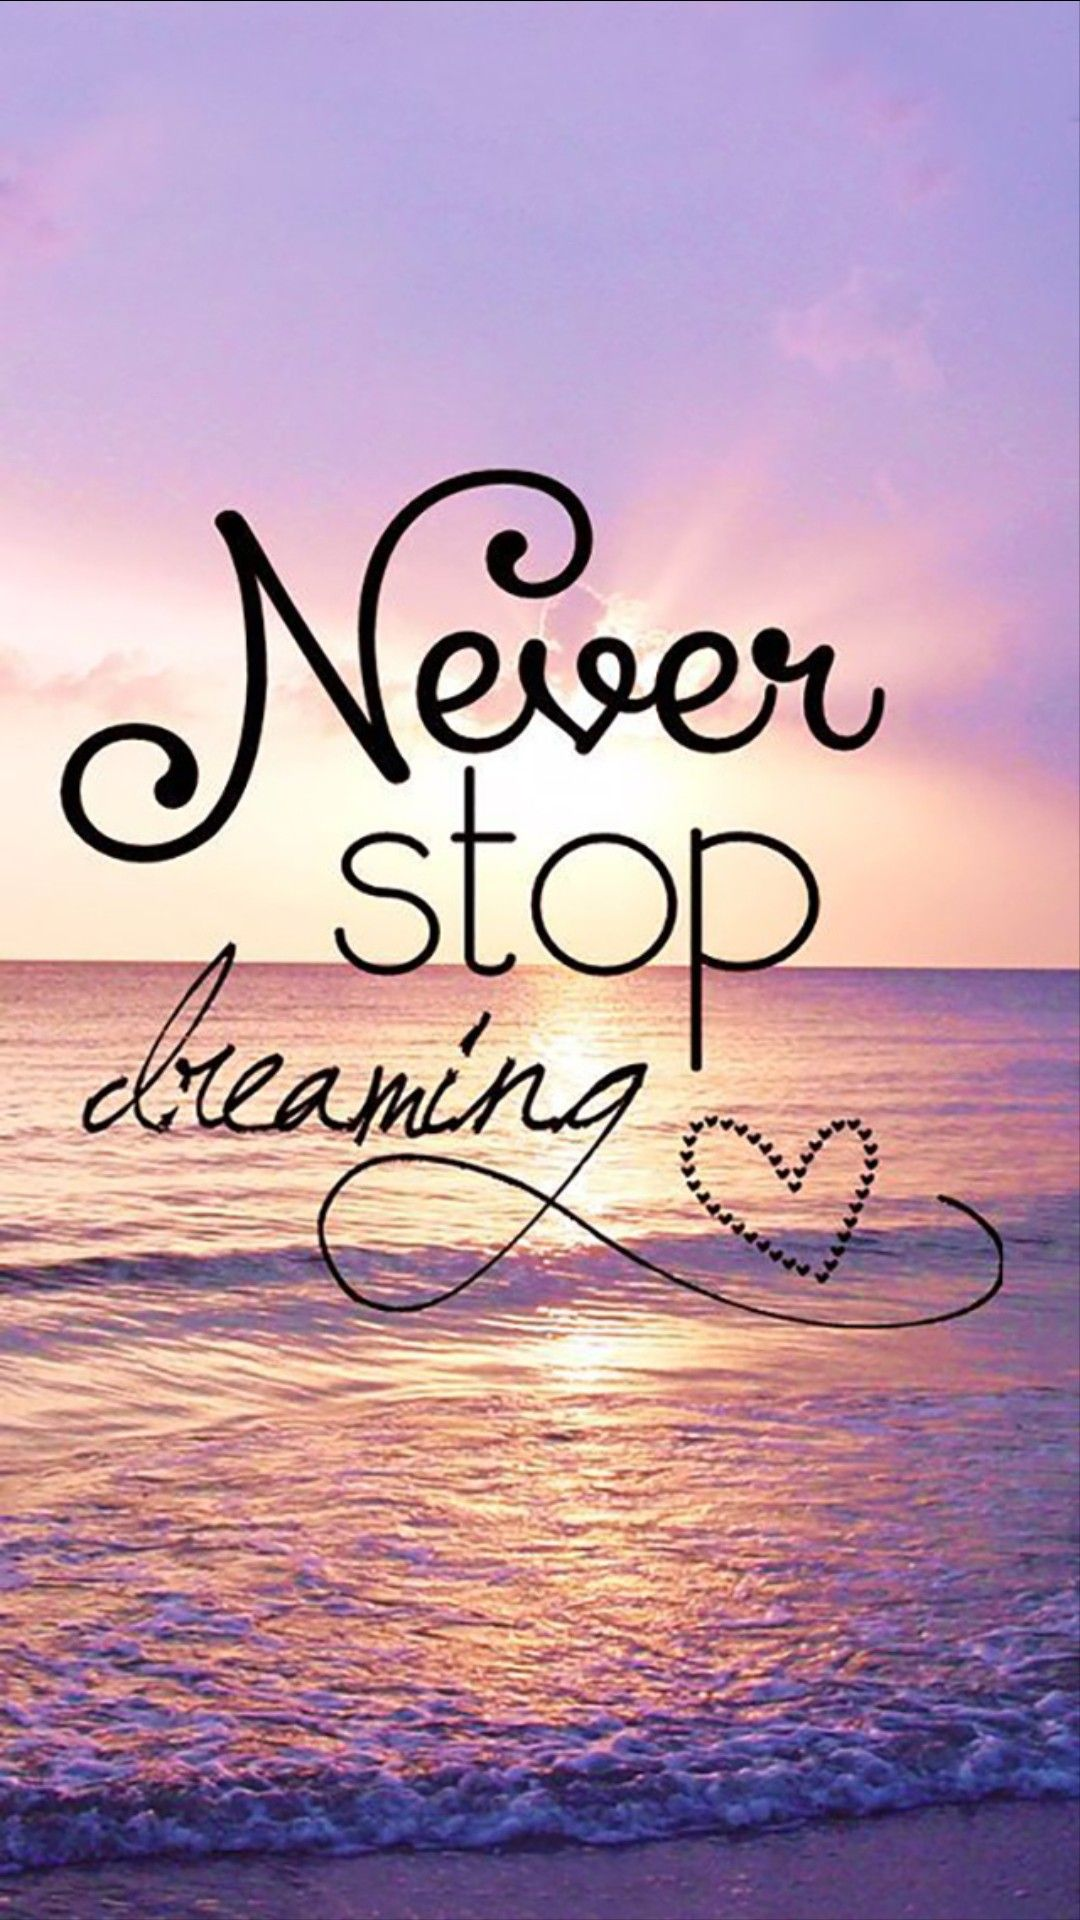 HD Quote Wallpaper Quotes Wallpapers Life quote never stop dreaming